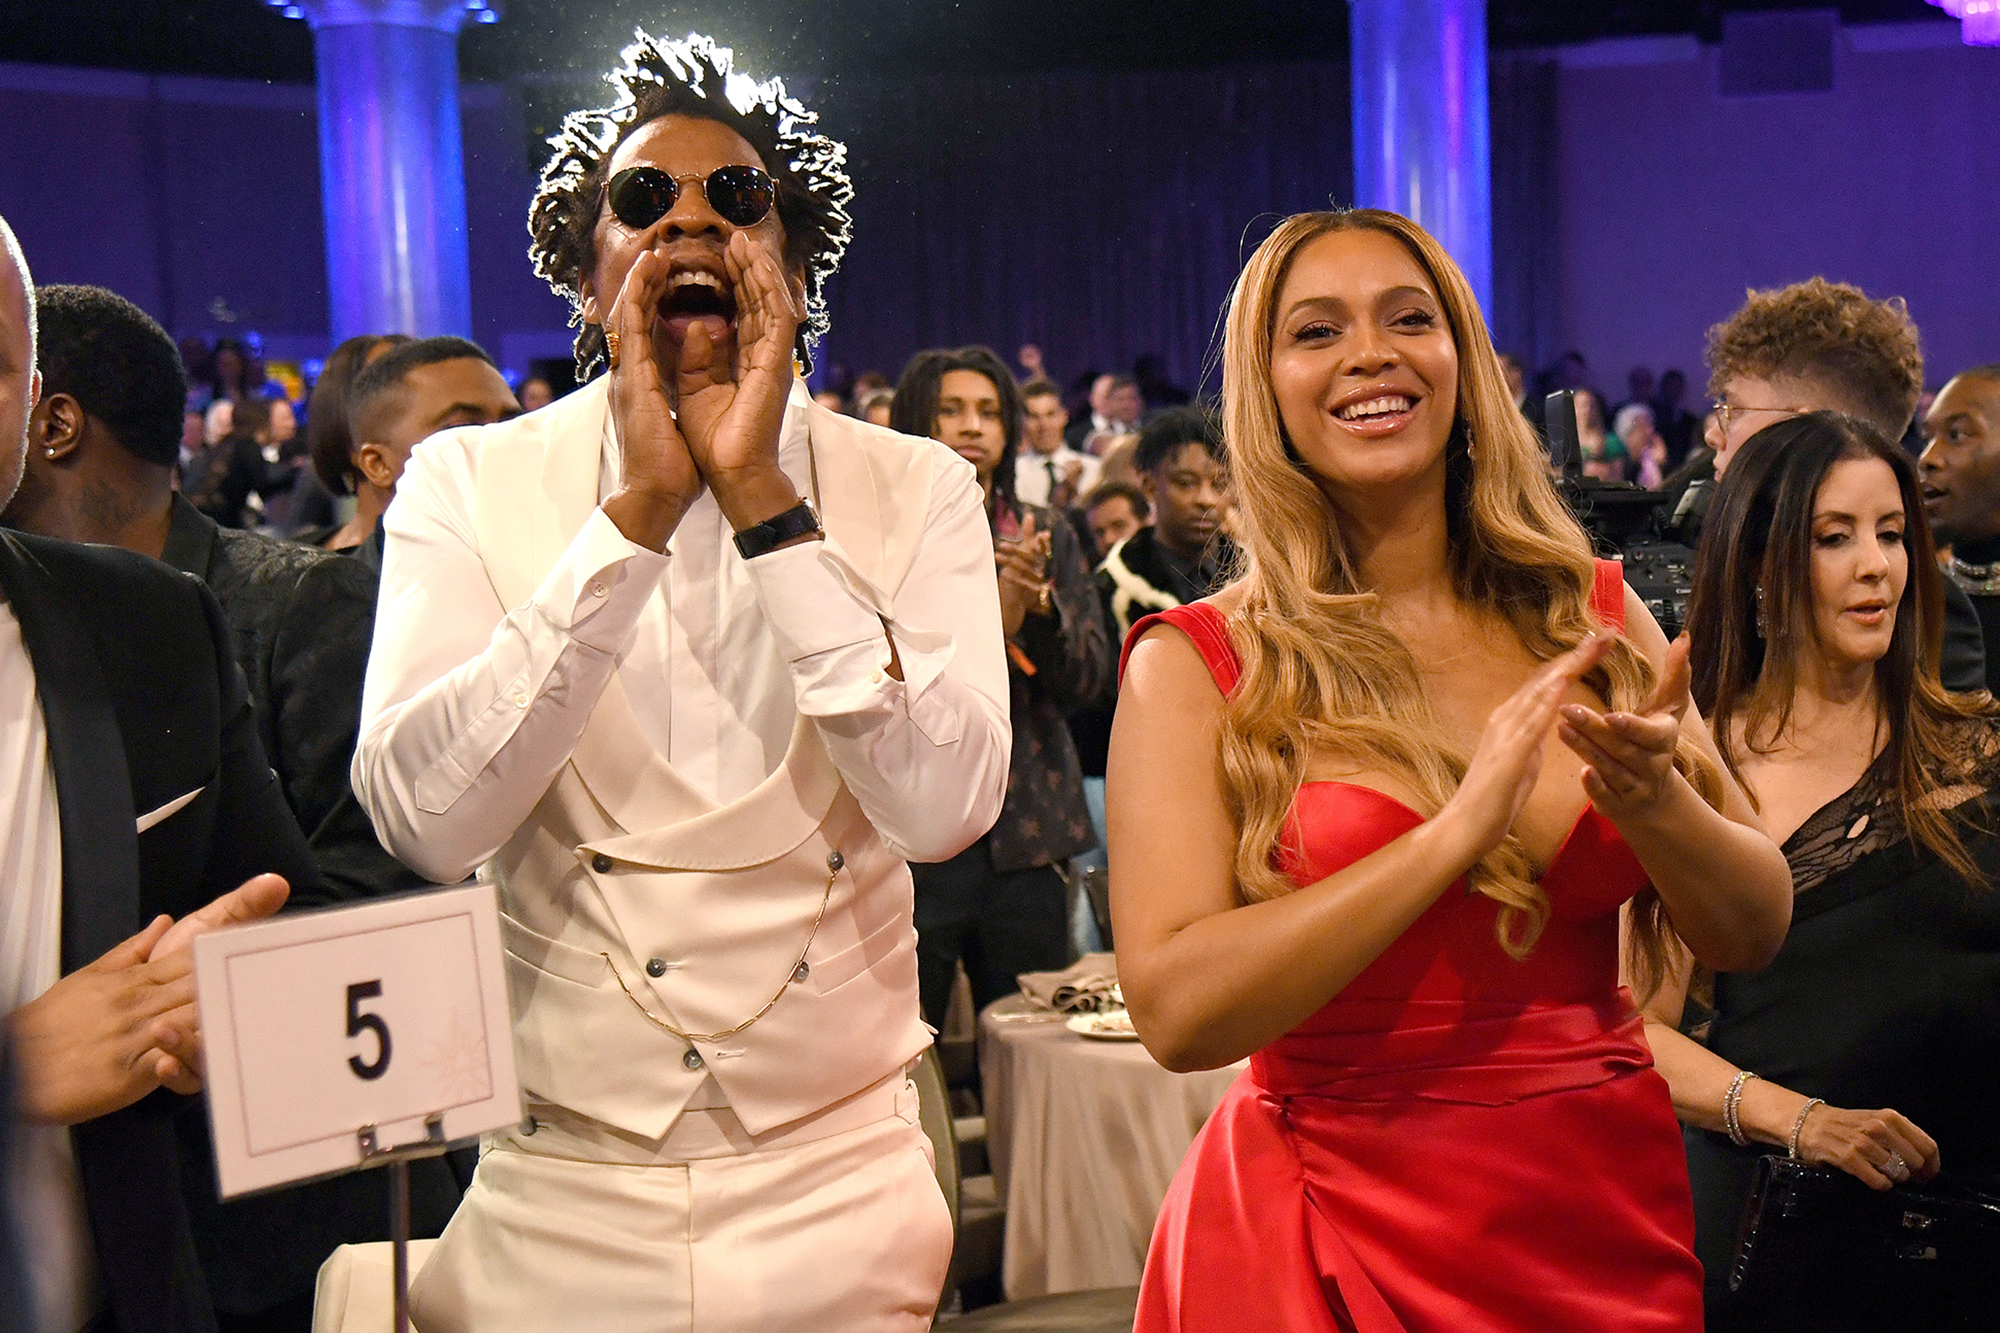 According to Jay-Z (left) he is still owed $2.7 million by Parlux in the deal.